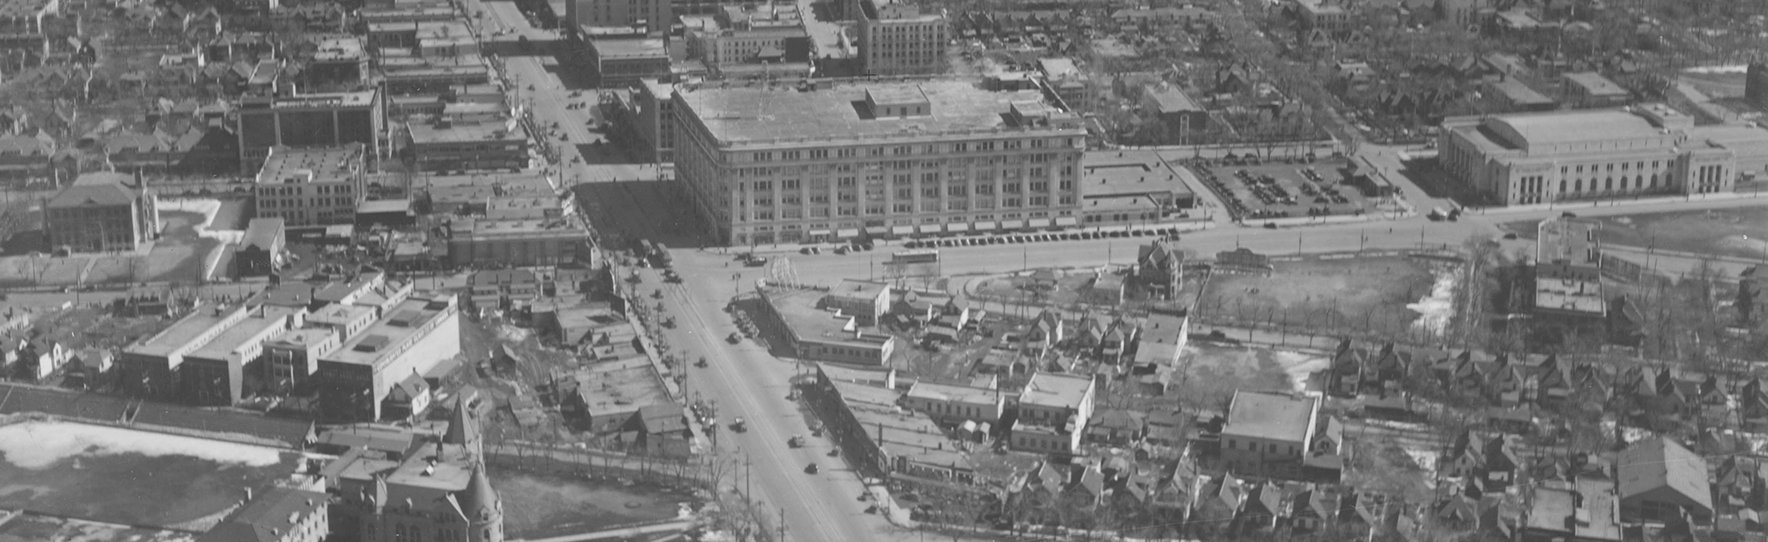 Aerial View of Winnipeg Looking East on Portage Avenue Towards Main Street, 1935